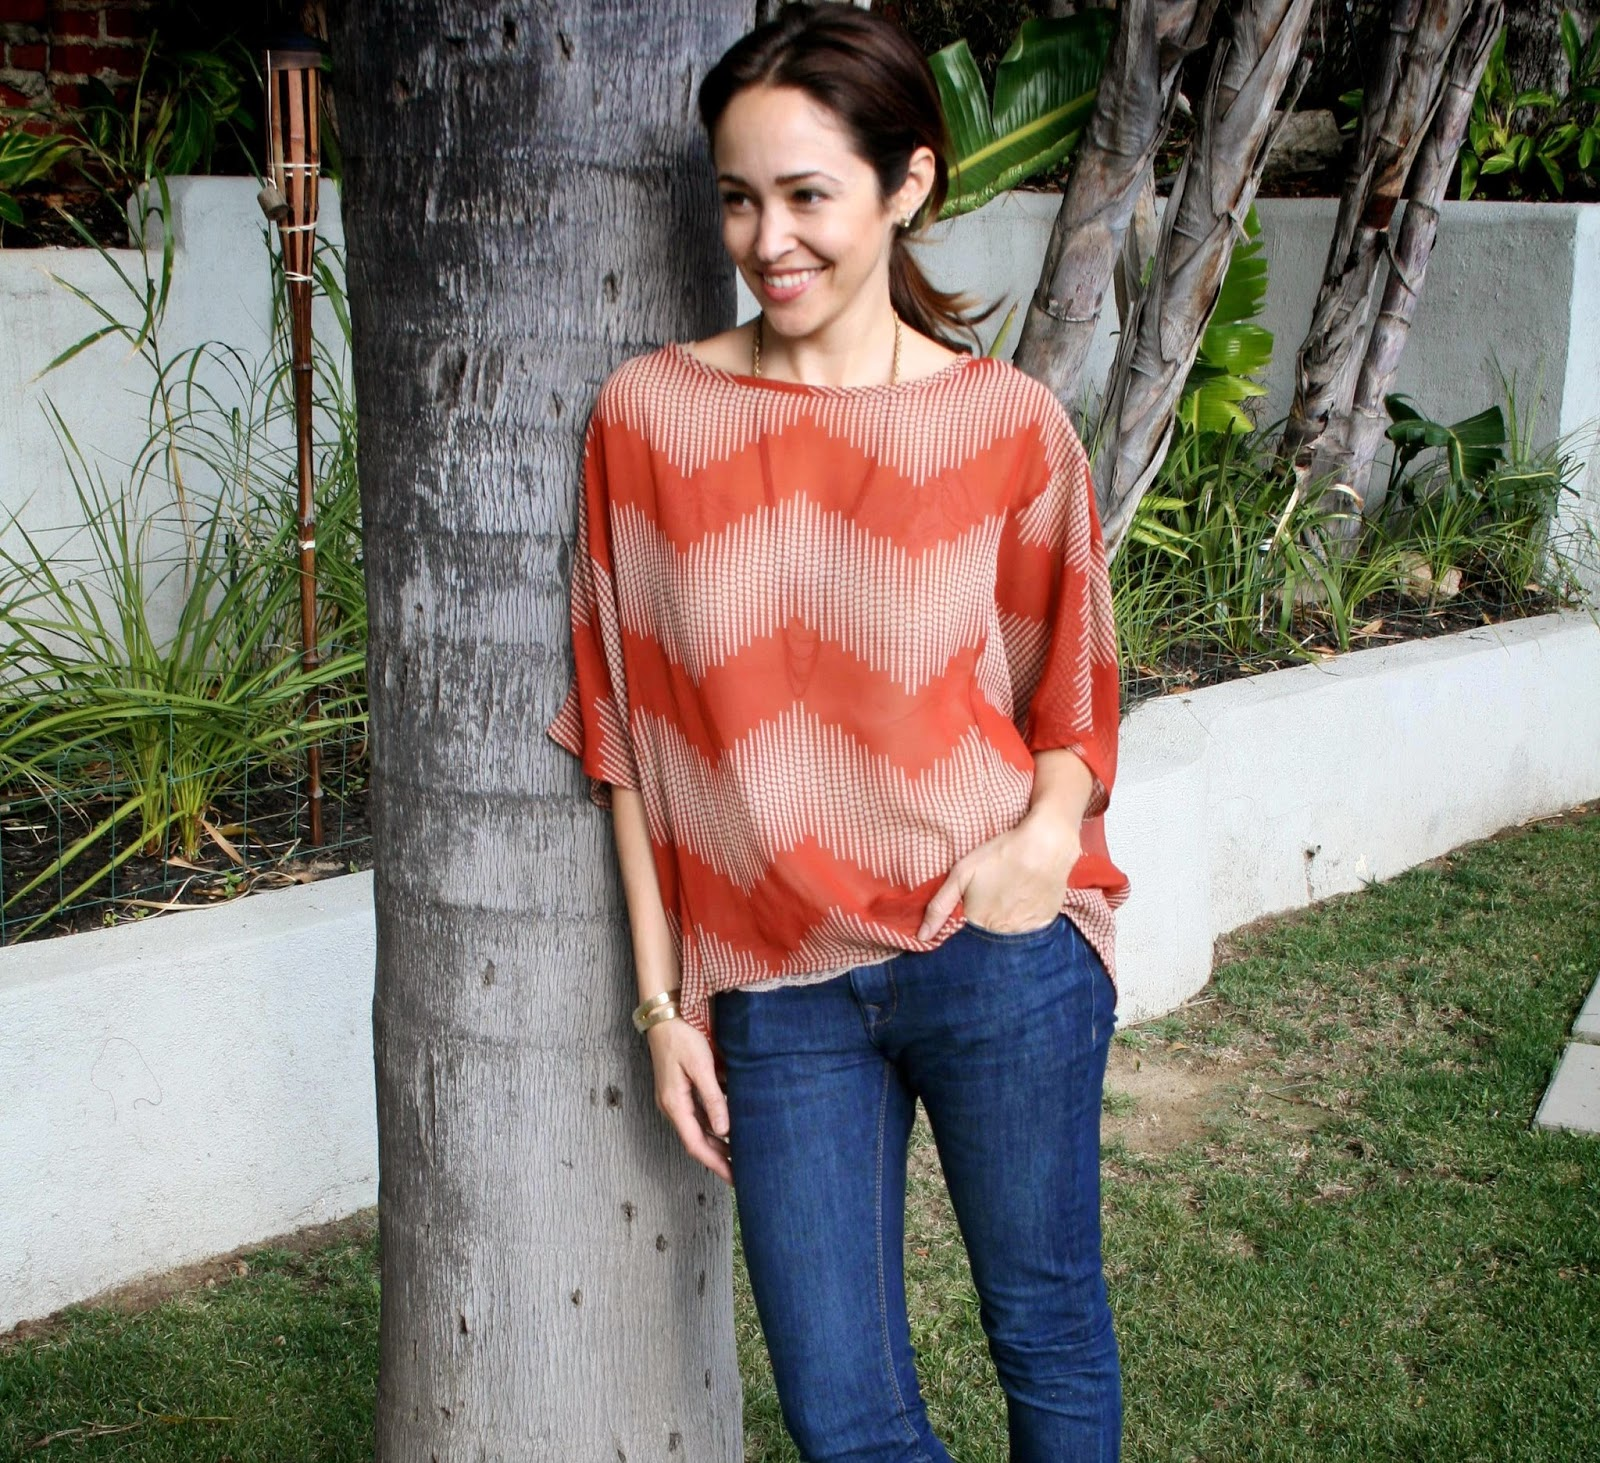 Autumn Reeser Wallpapers Free Download